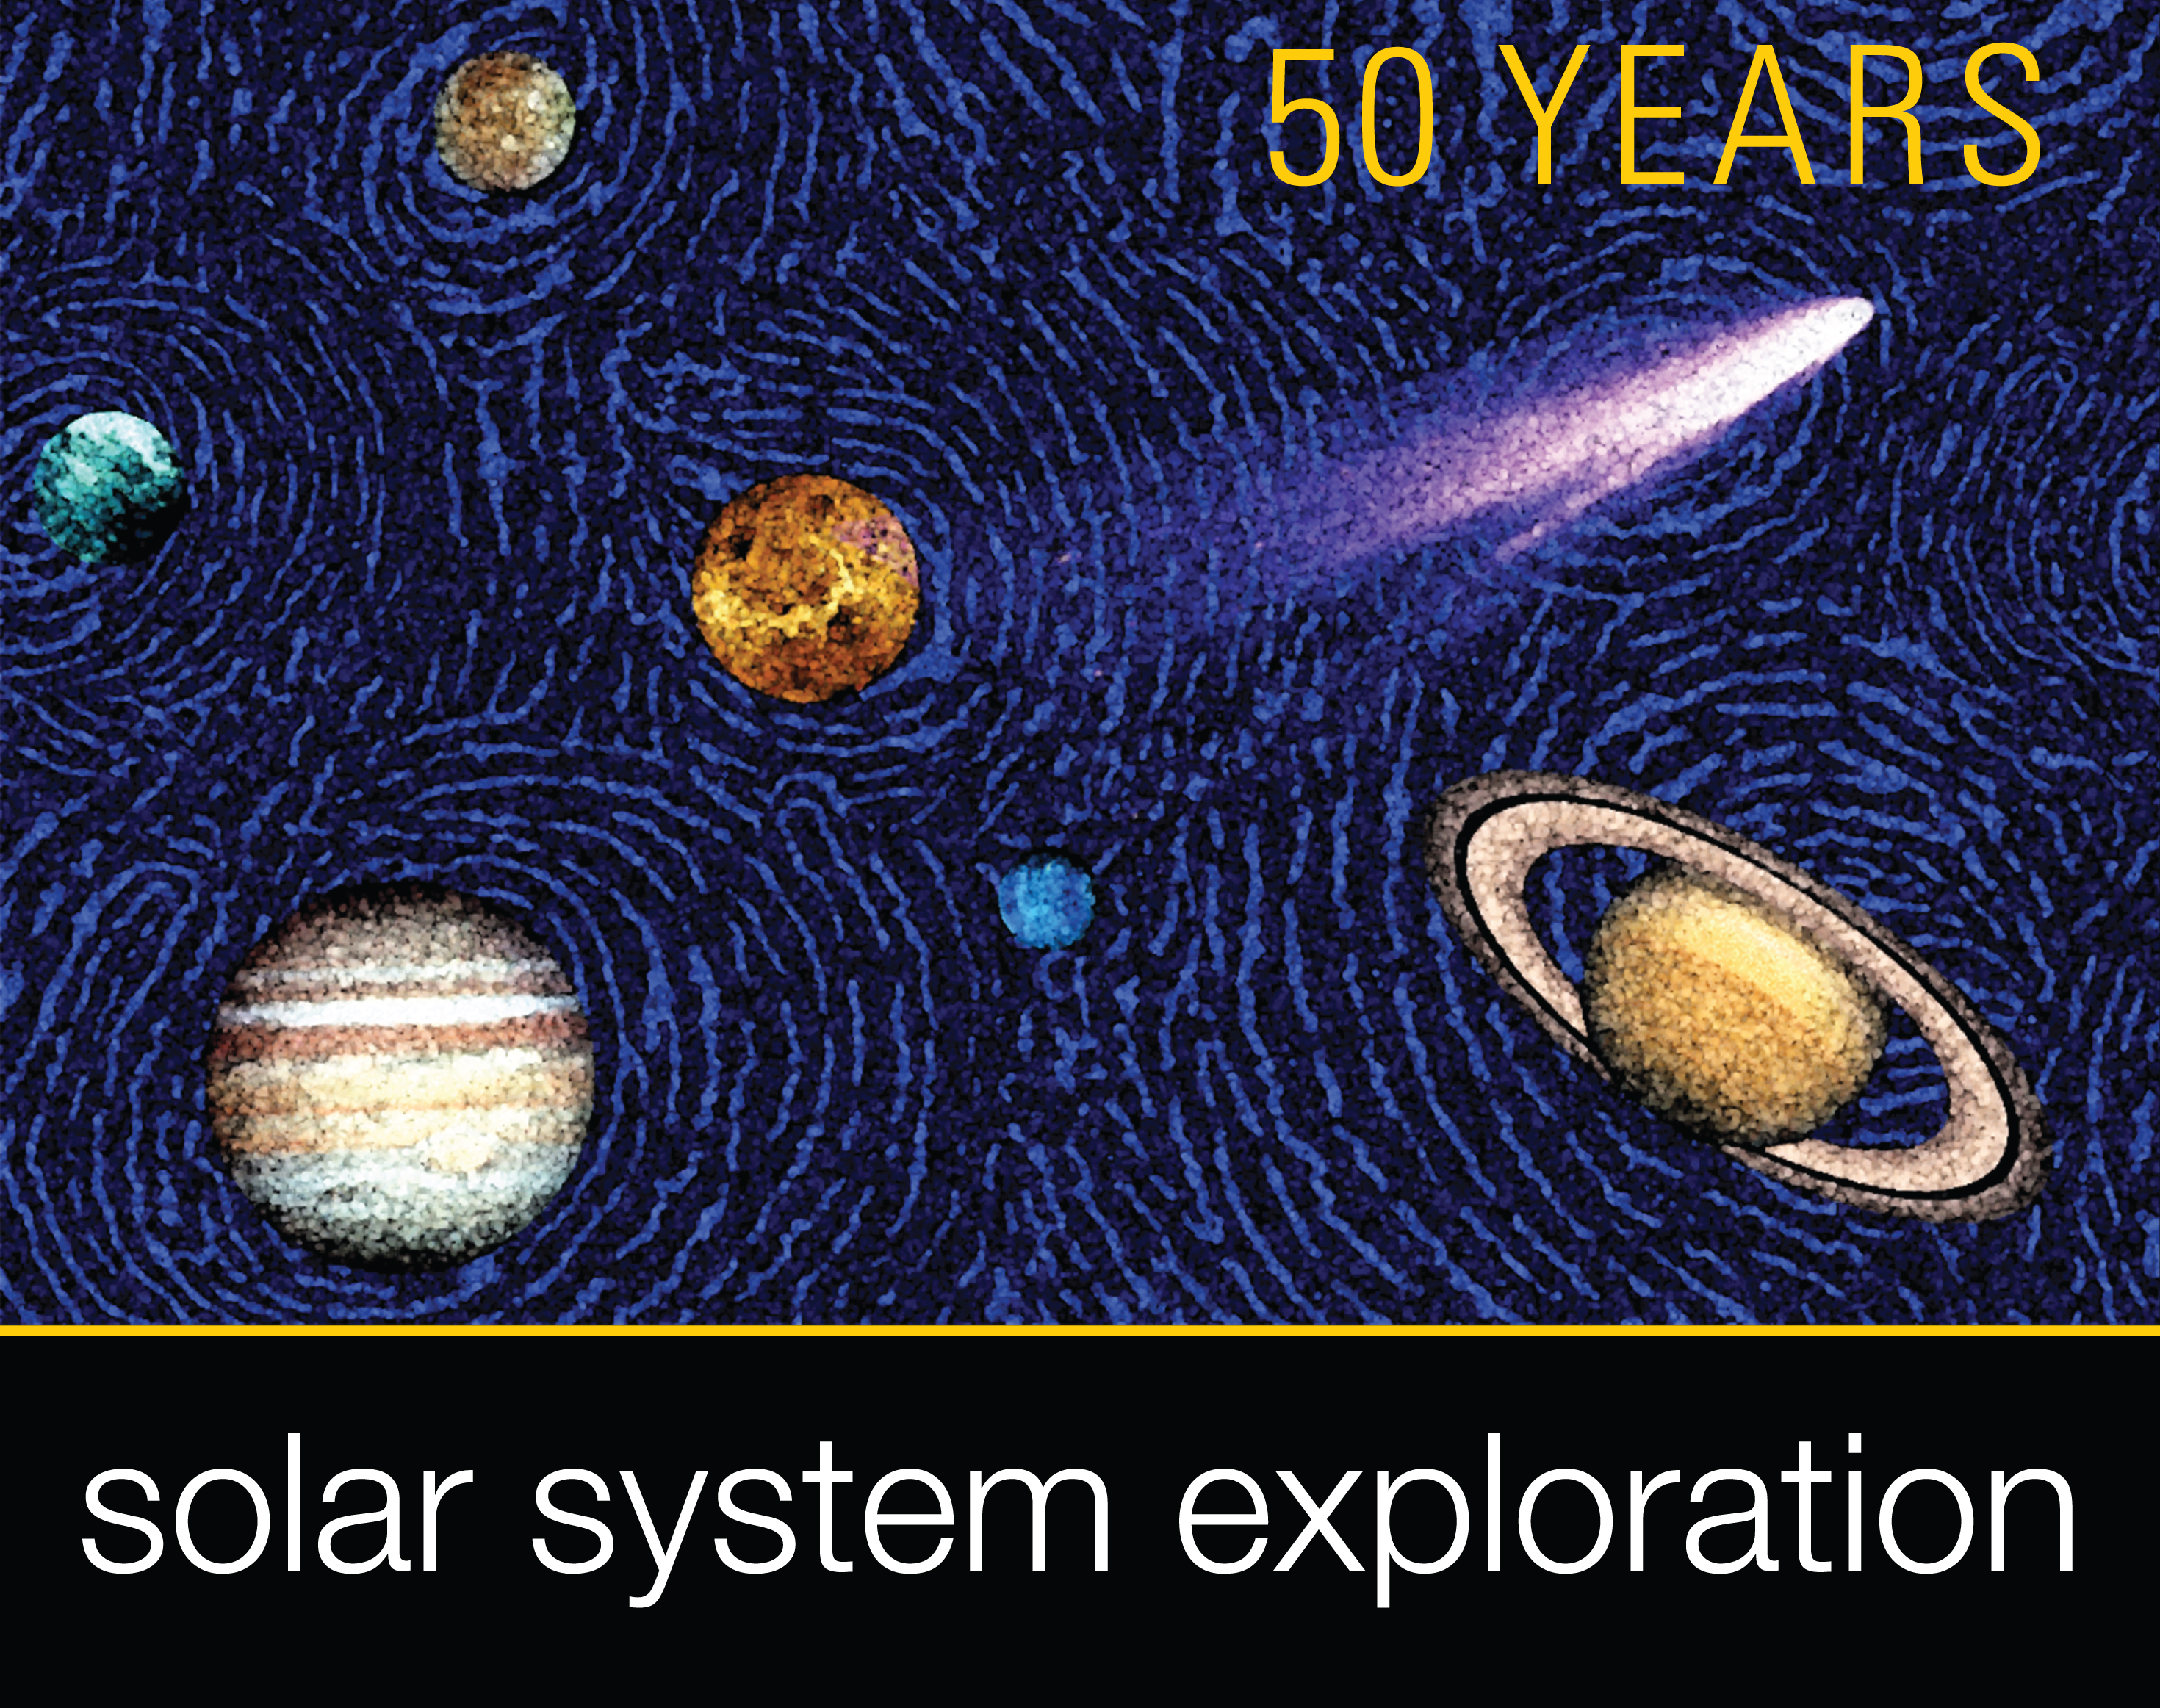 solar system planetary year - photo #21